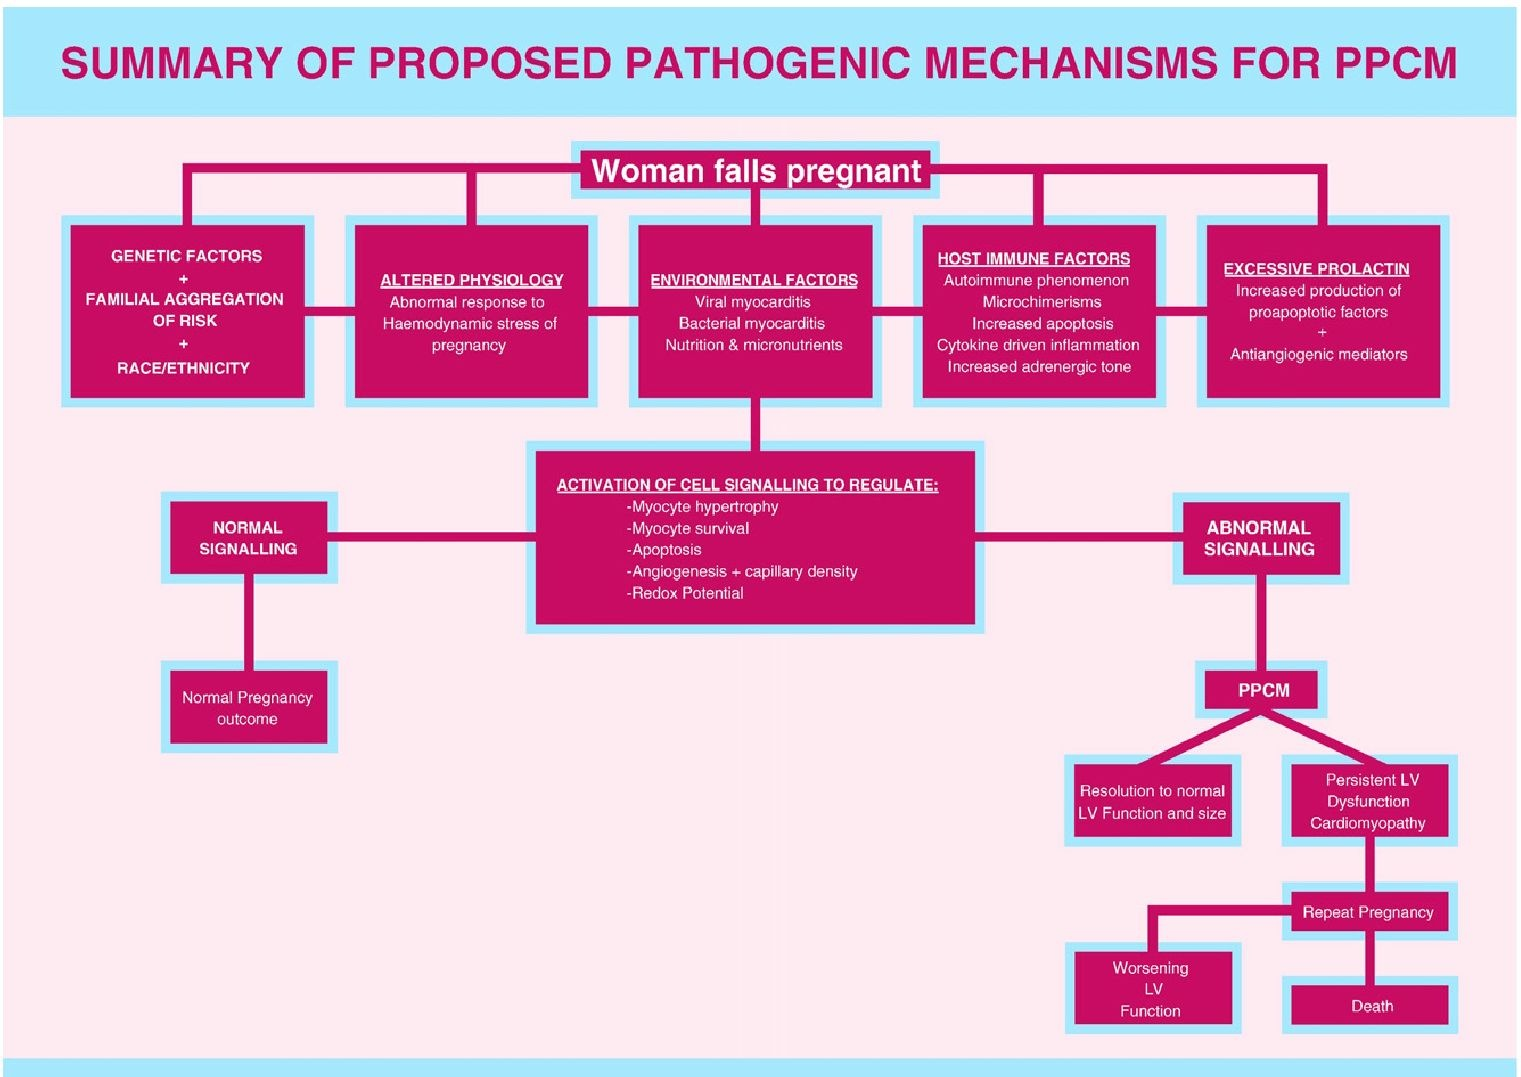 Summary of proposed pathogenic mechanisms for PPCM.